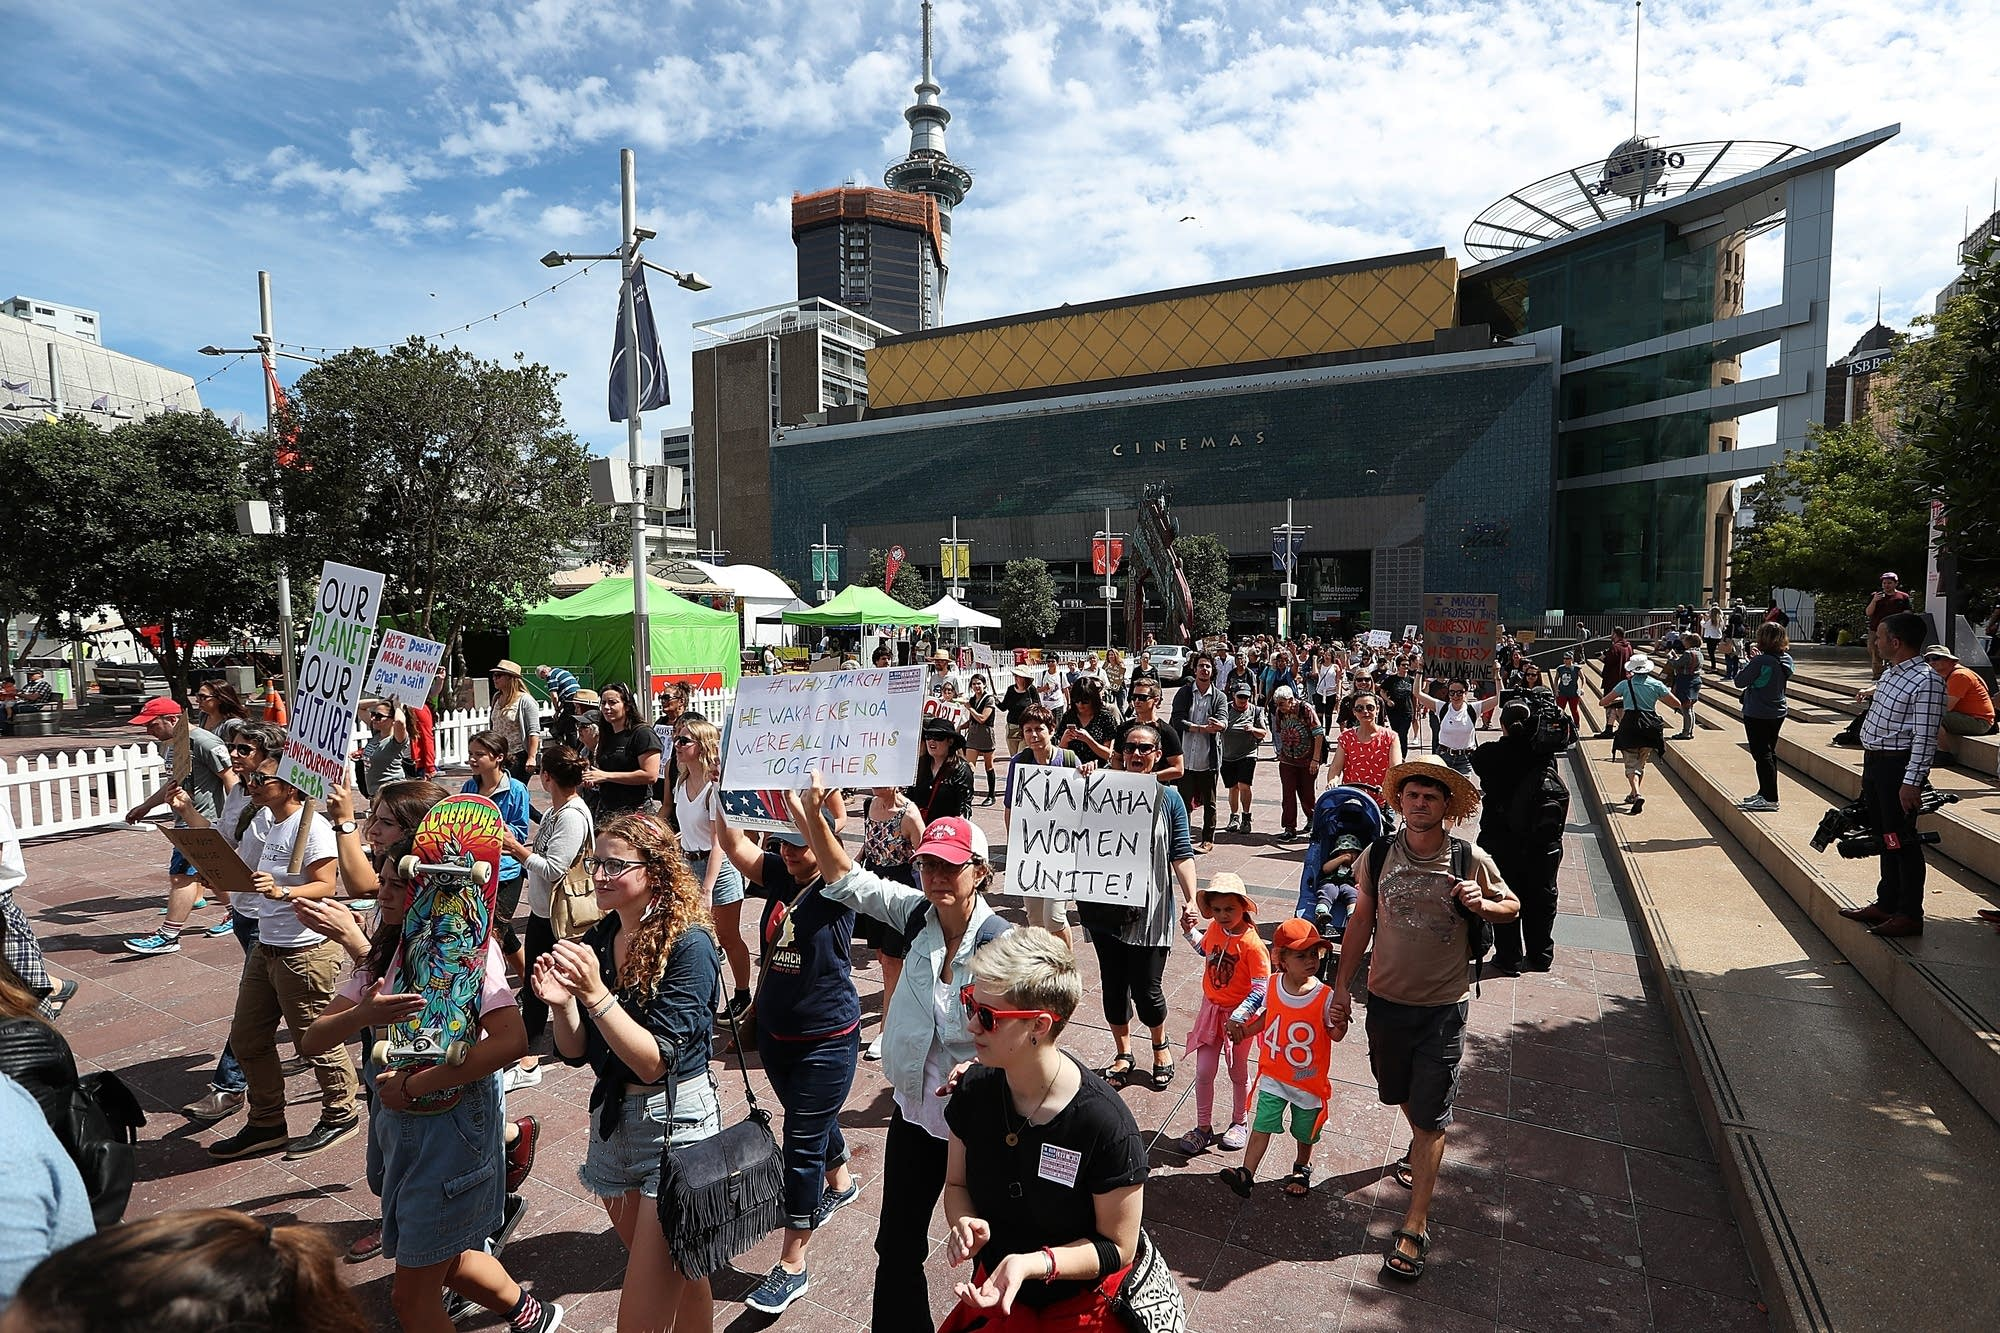 Auckland, New Zealand: Thousands of people march up Queen Street.